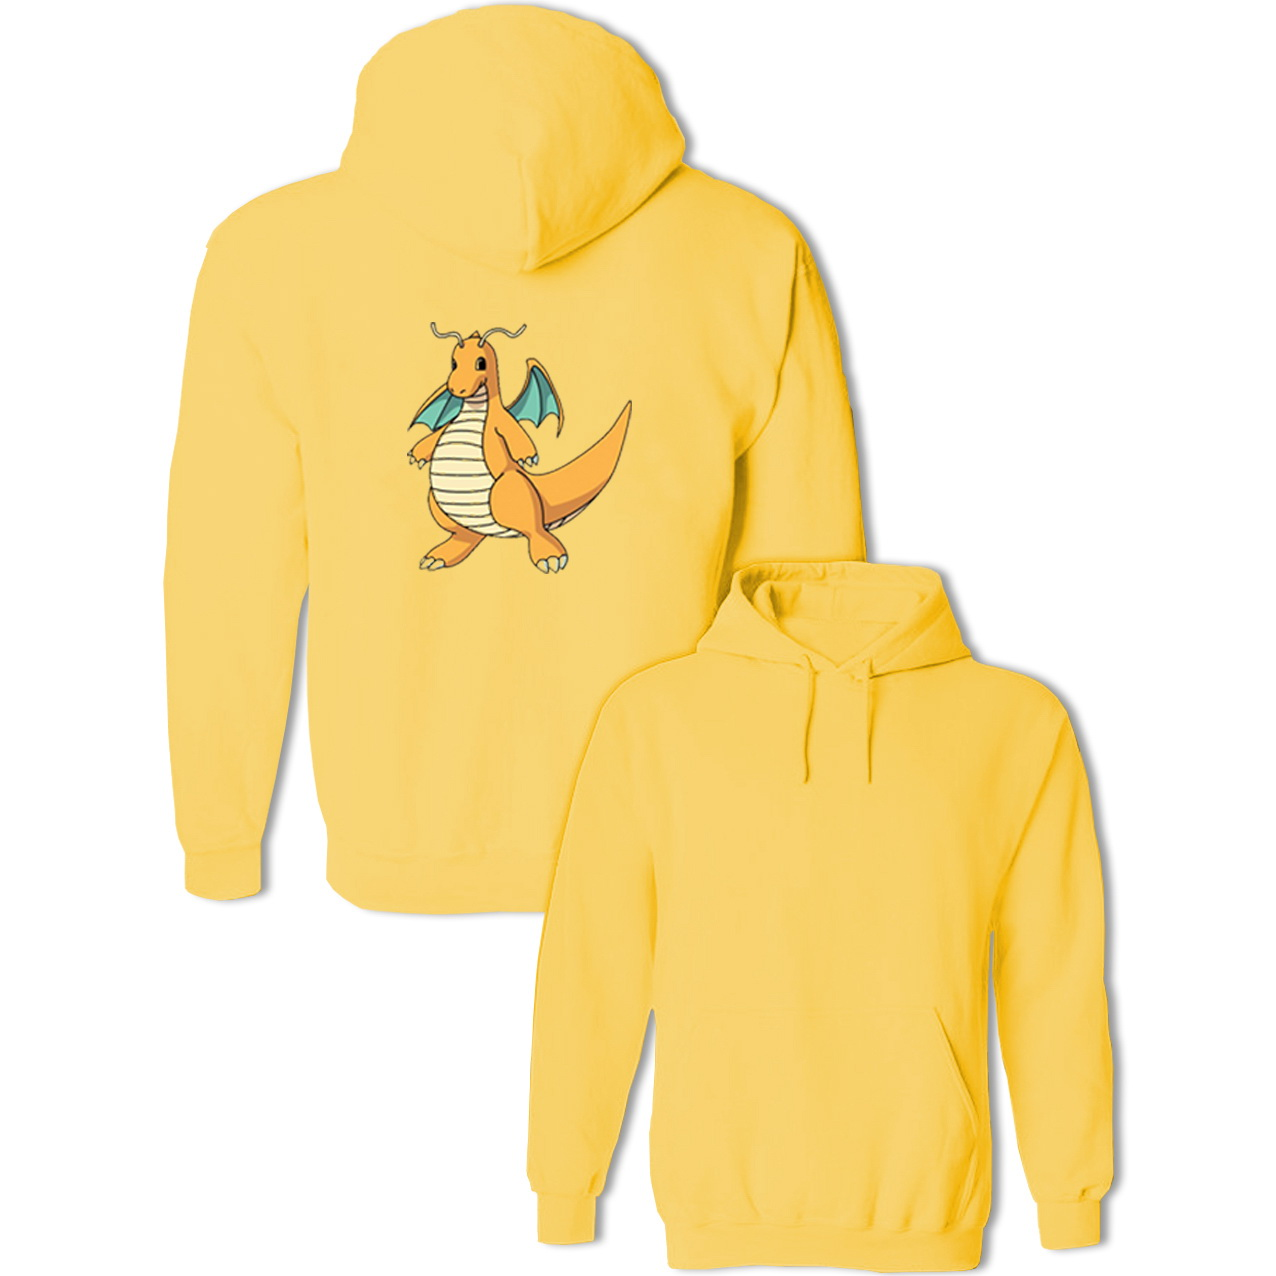 Anime Pokemon Sprites Dragonite Hoodies Cosplay Family Spring Autumn Winter Unisex Men's Women's Sweatshirts Pullovers Jackets